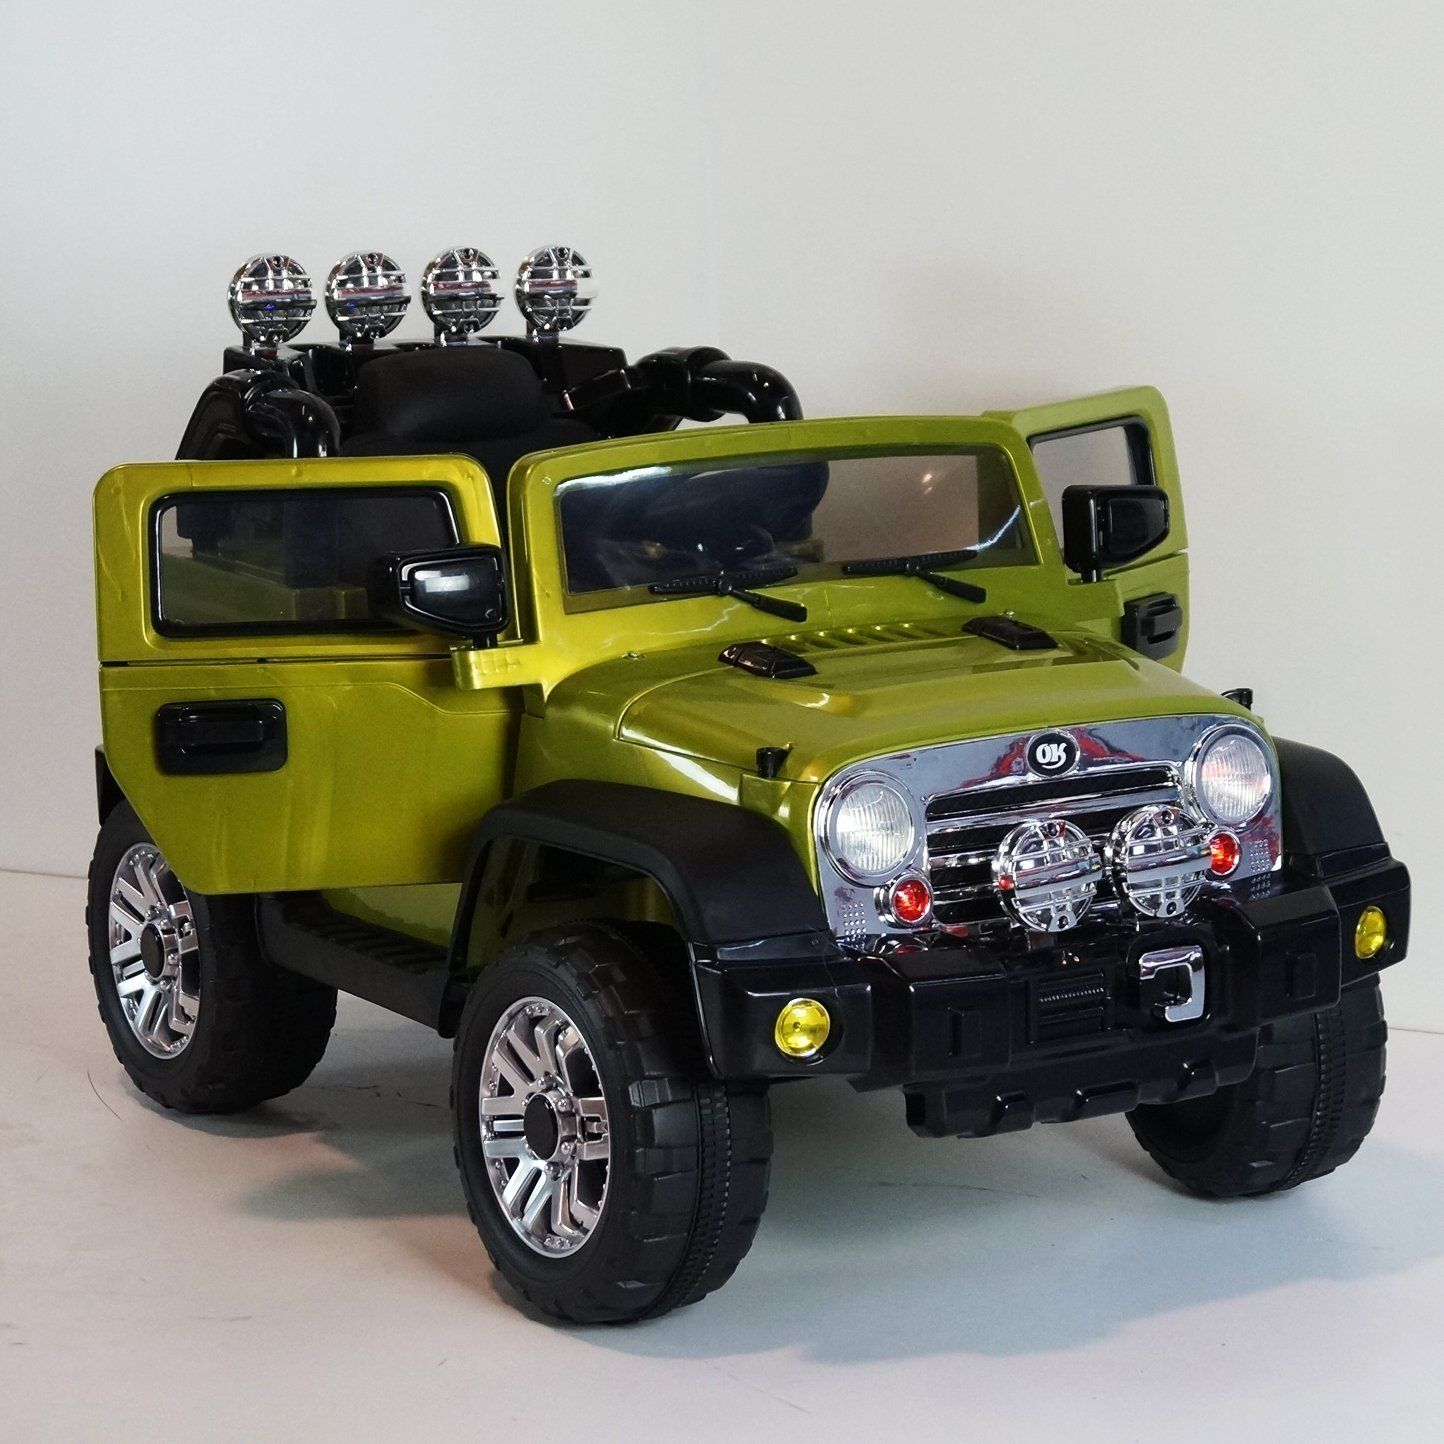 luxurious limited edition jeep cj7 12v battery 2 motors mp3 remote control